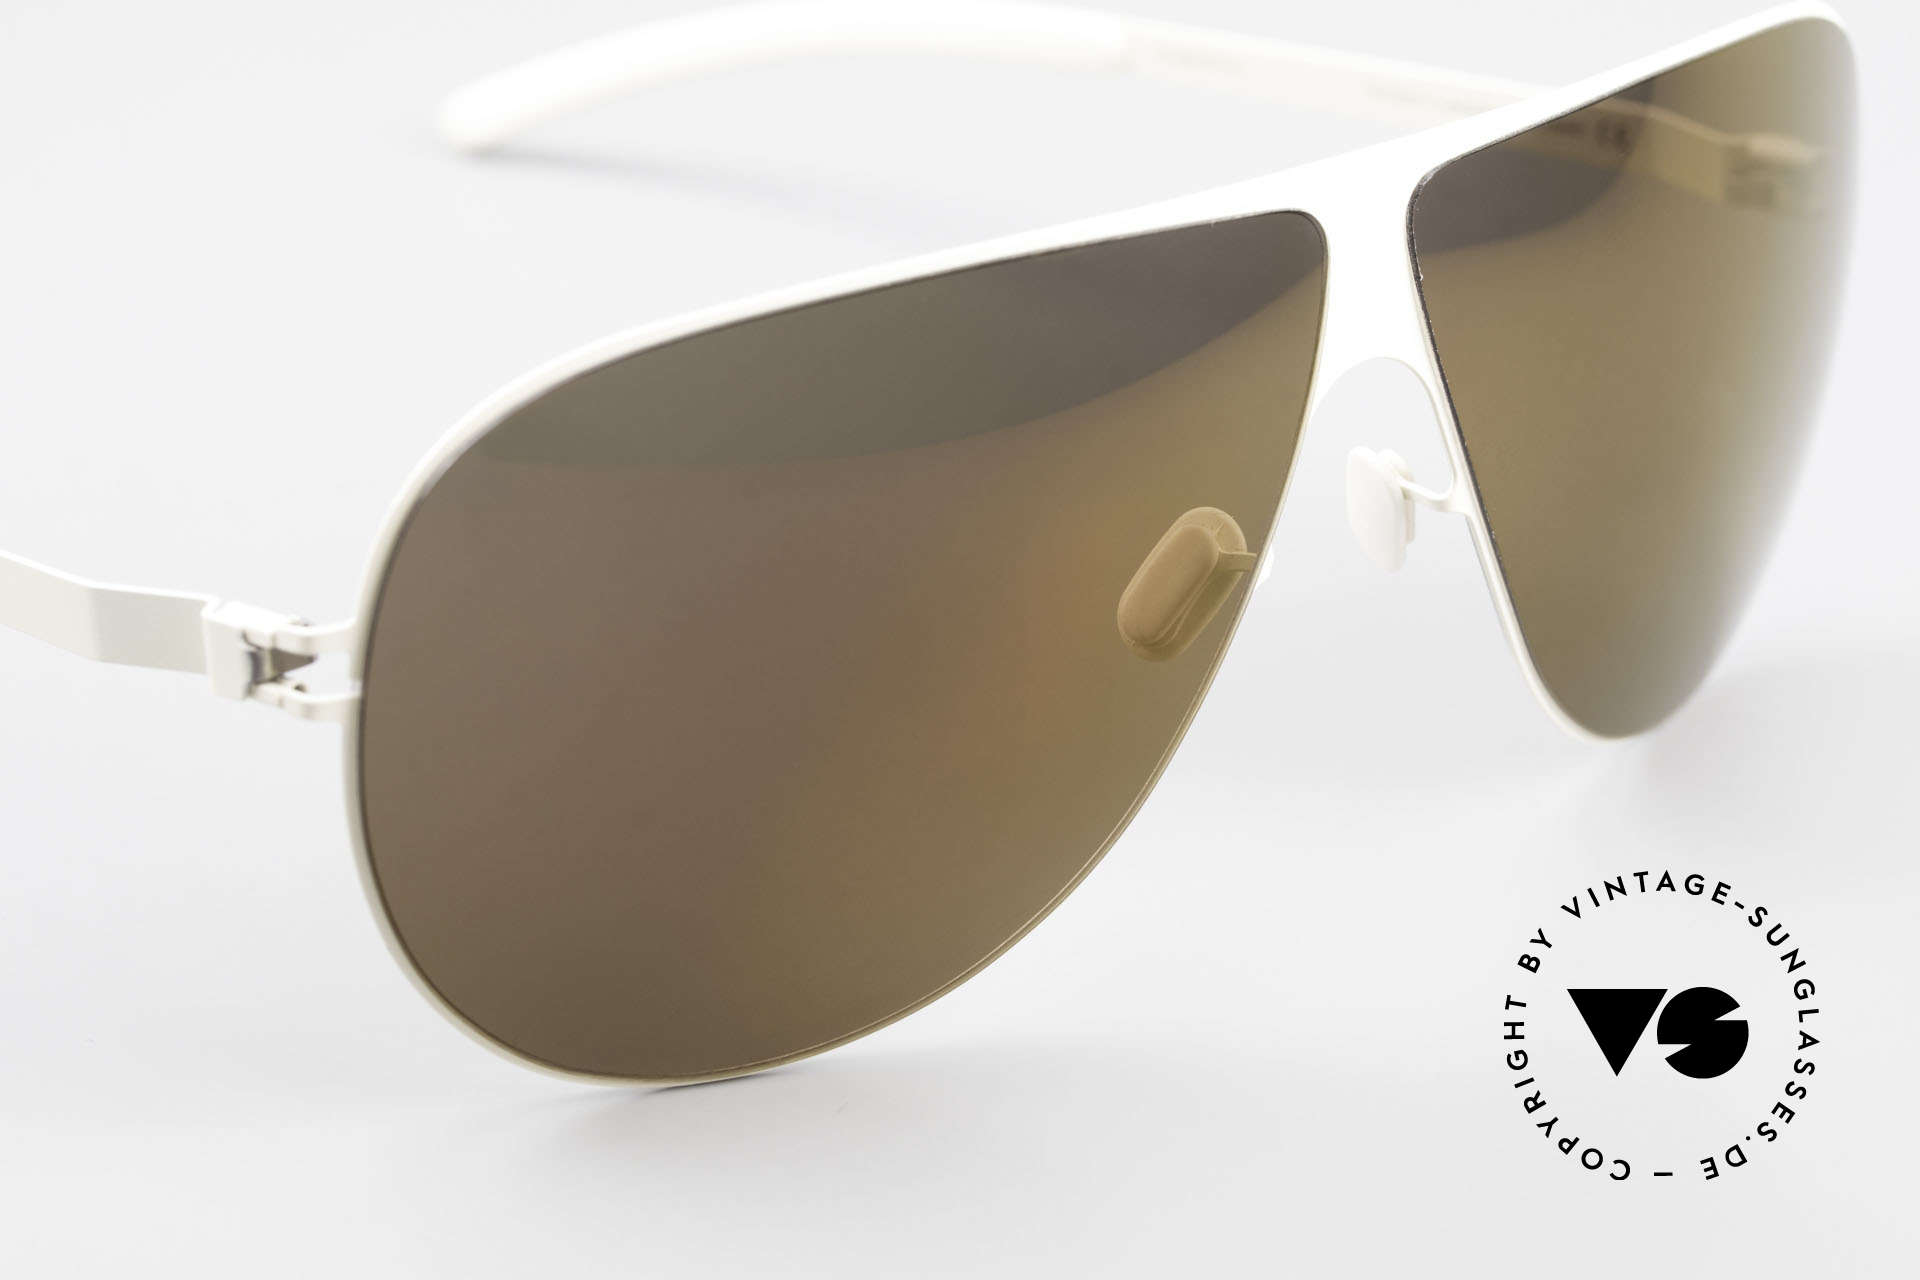 Mykita Elliot Tom Cruise Mykita Sunglasses, with non-reflecting and half-mirrored ZEISS sun lenses, Made for Men